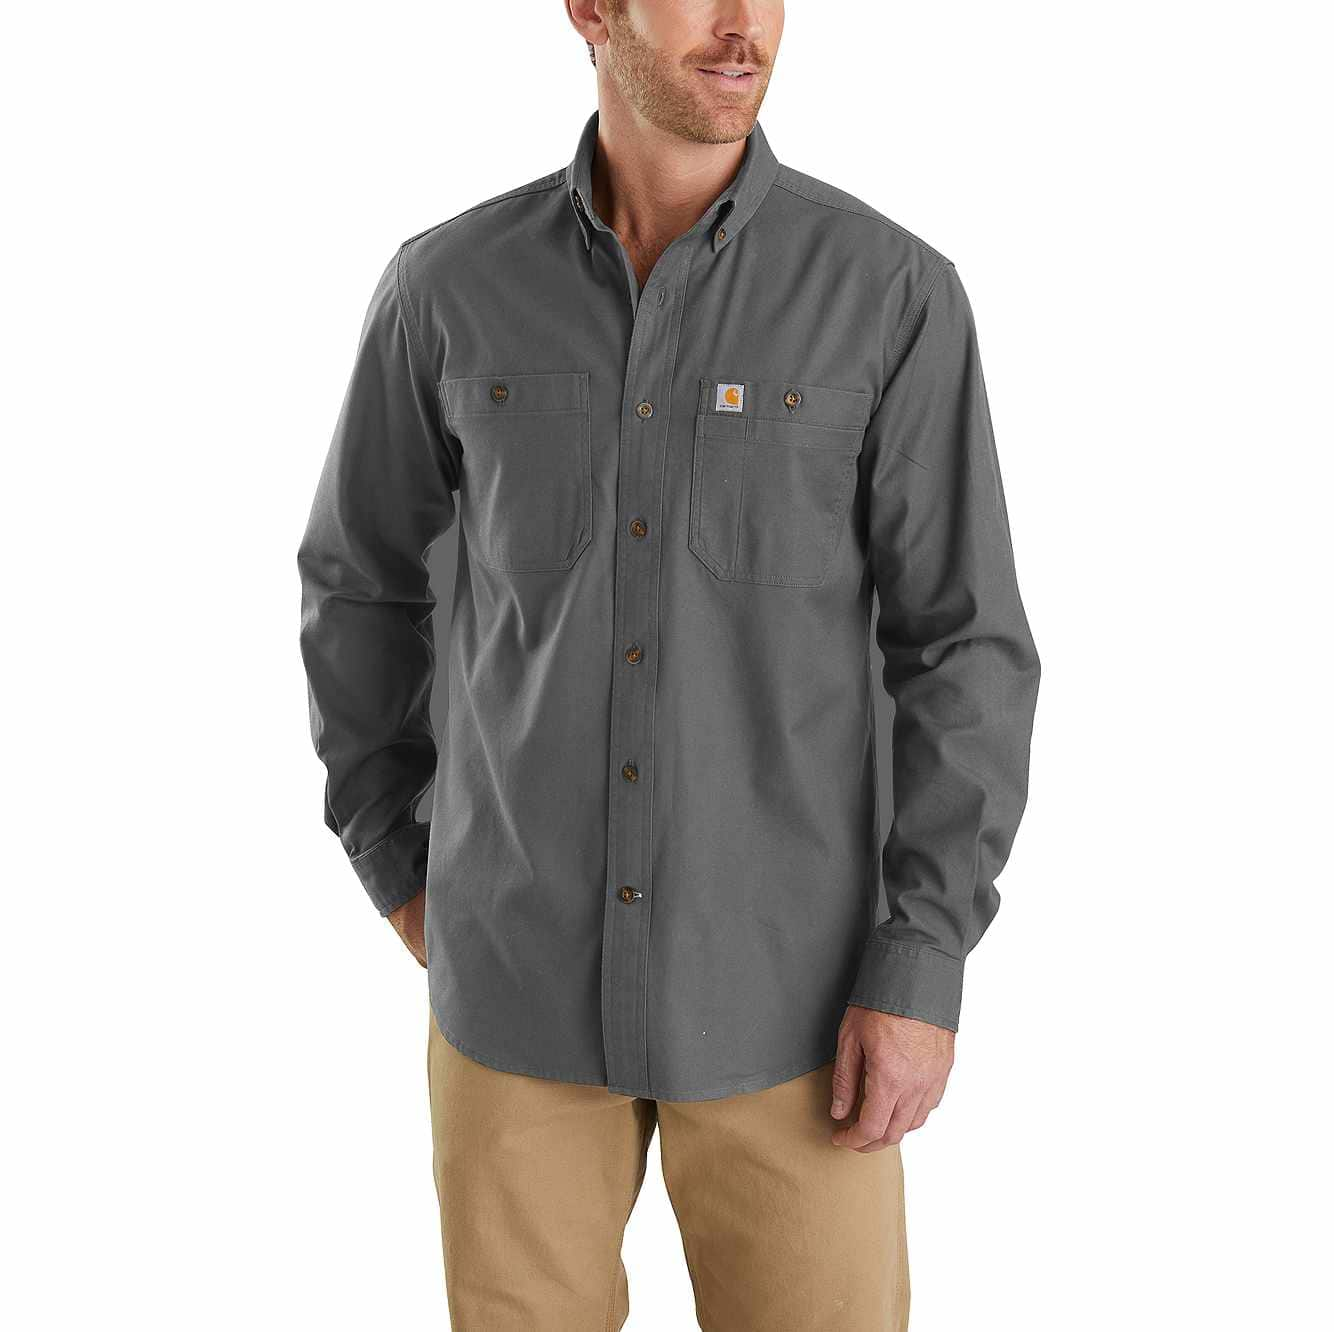 Picture of Rugged Flex Rigby Long-Sleeve Work Shirt in Gravel